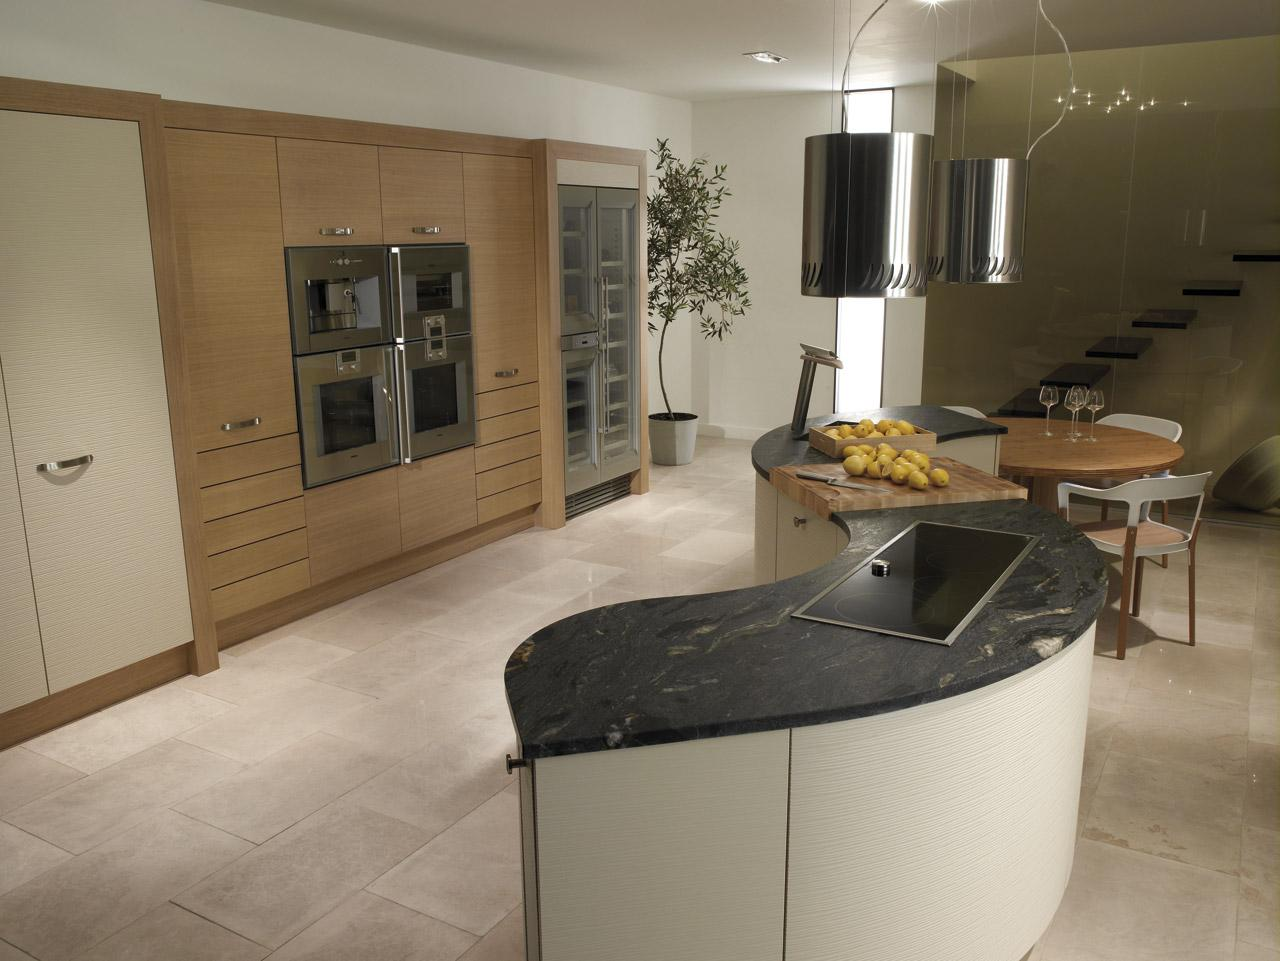 Kleiderhaus fitted furniture wardrobes and sliding doors for Contemporary kitchens uk